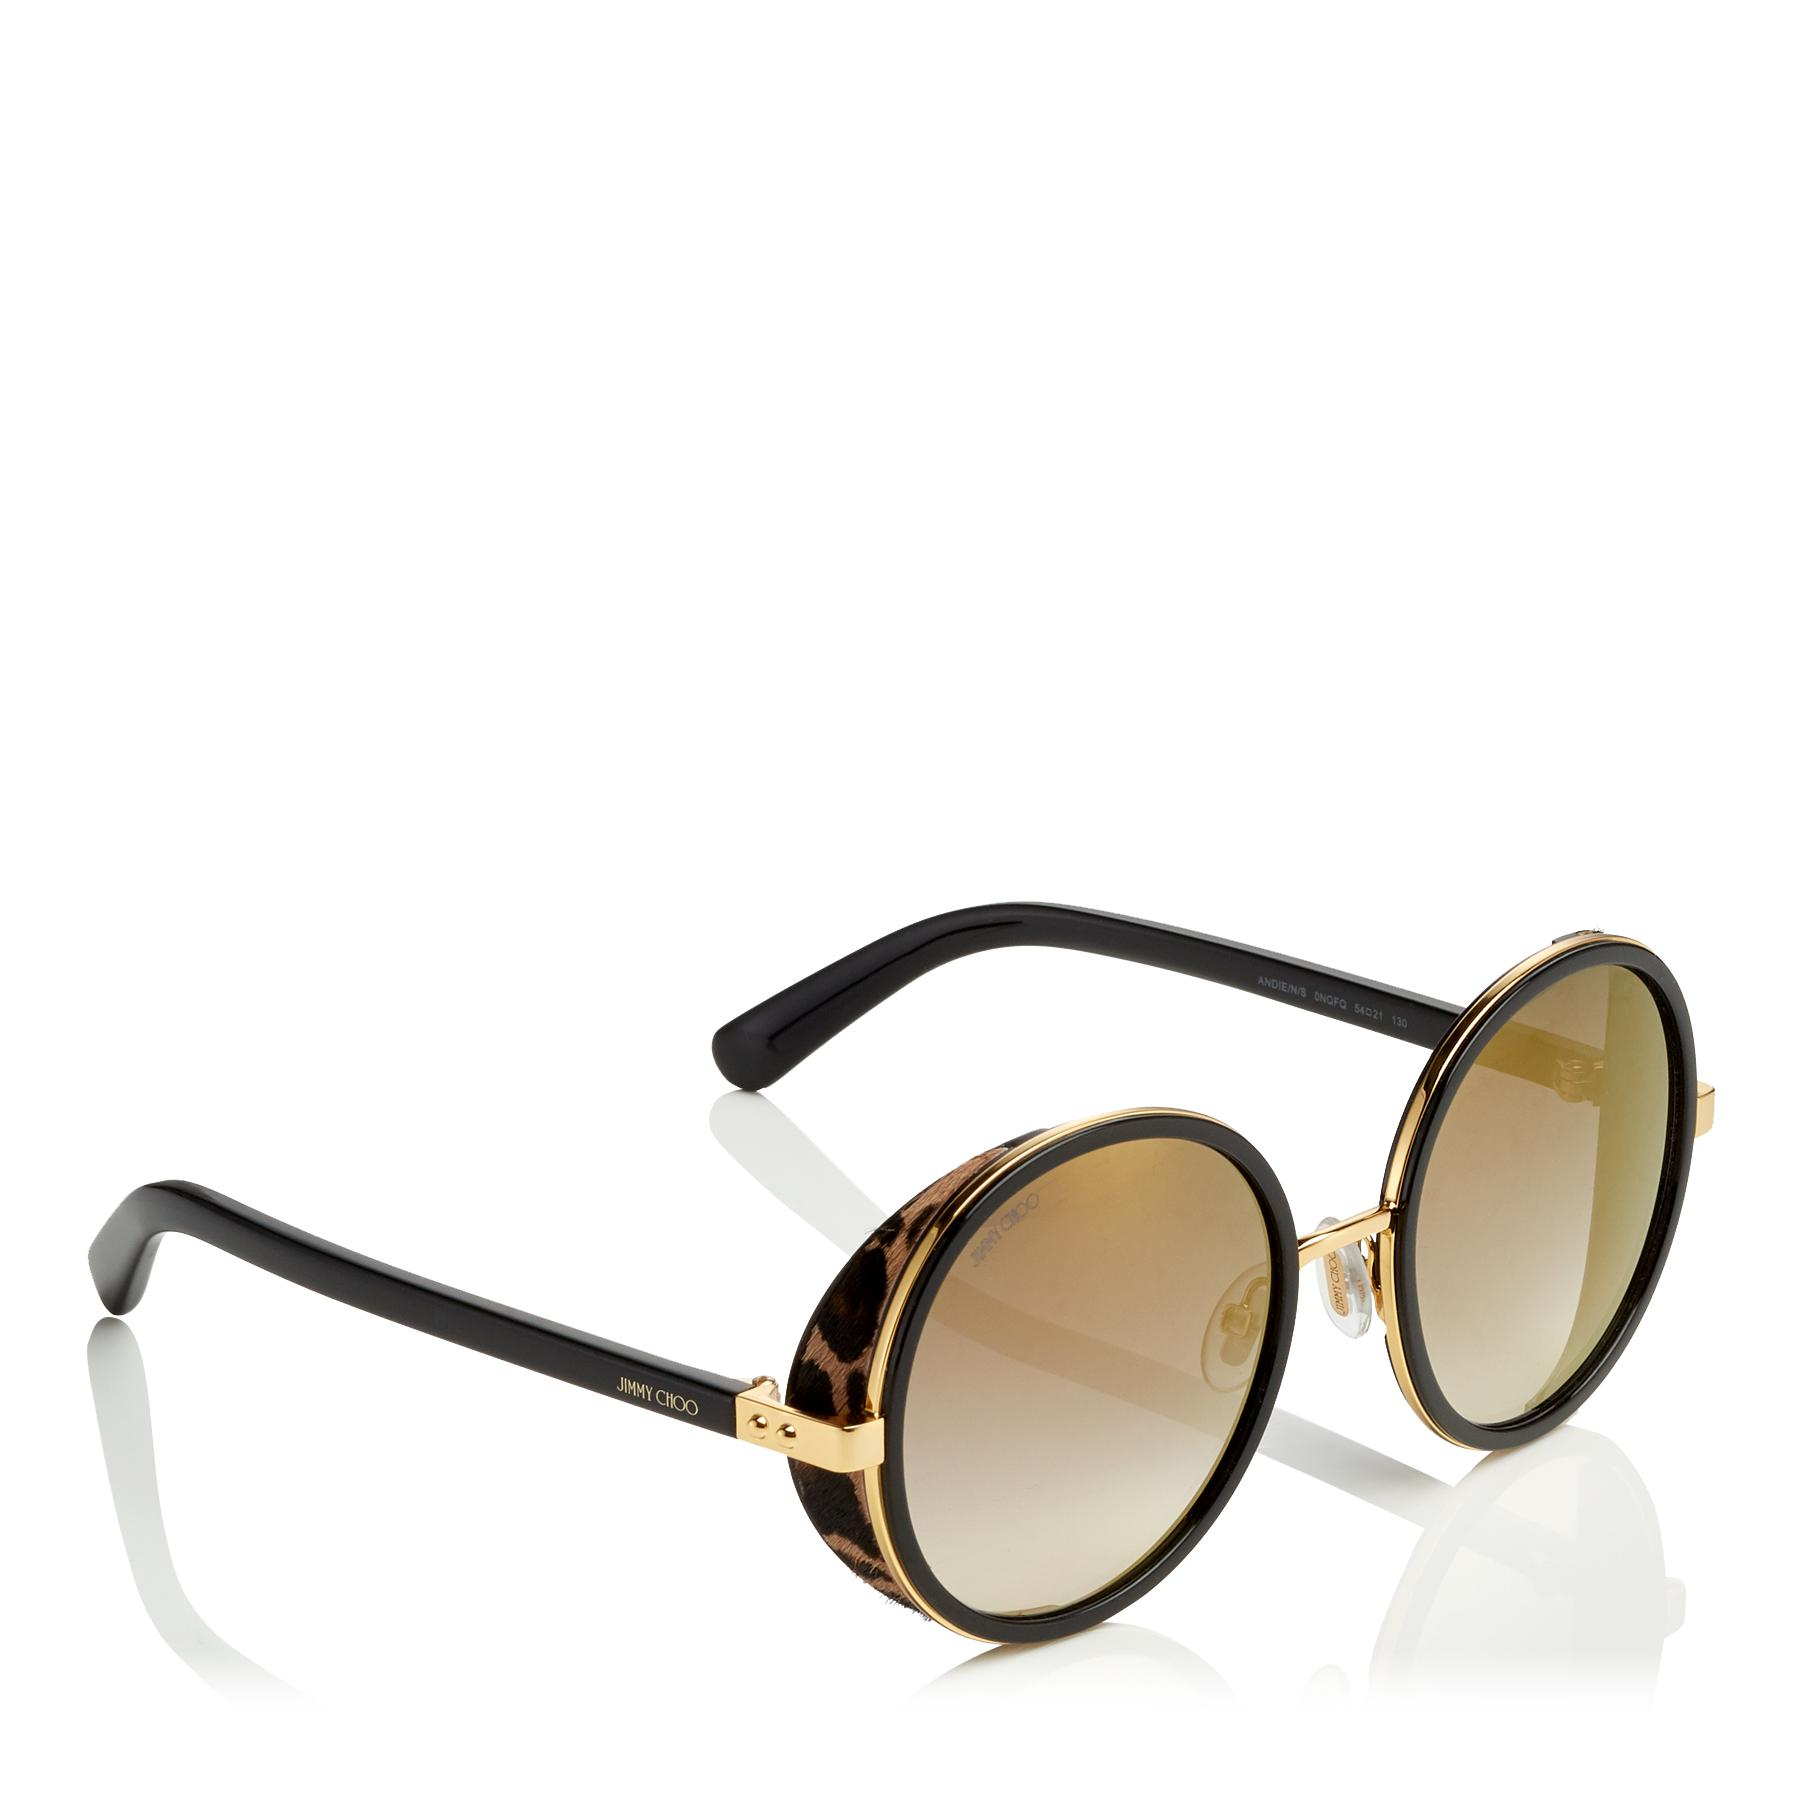 63c10e91b1b8 Jimmy Choo - Multicolor Andie Black Acetate Round Framed Sunglasses With  Leapard Cavallino Leather Detailing -. View fullscreen